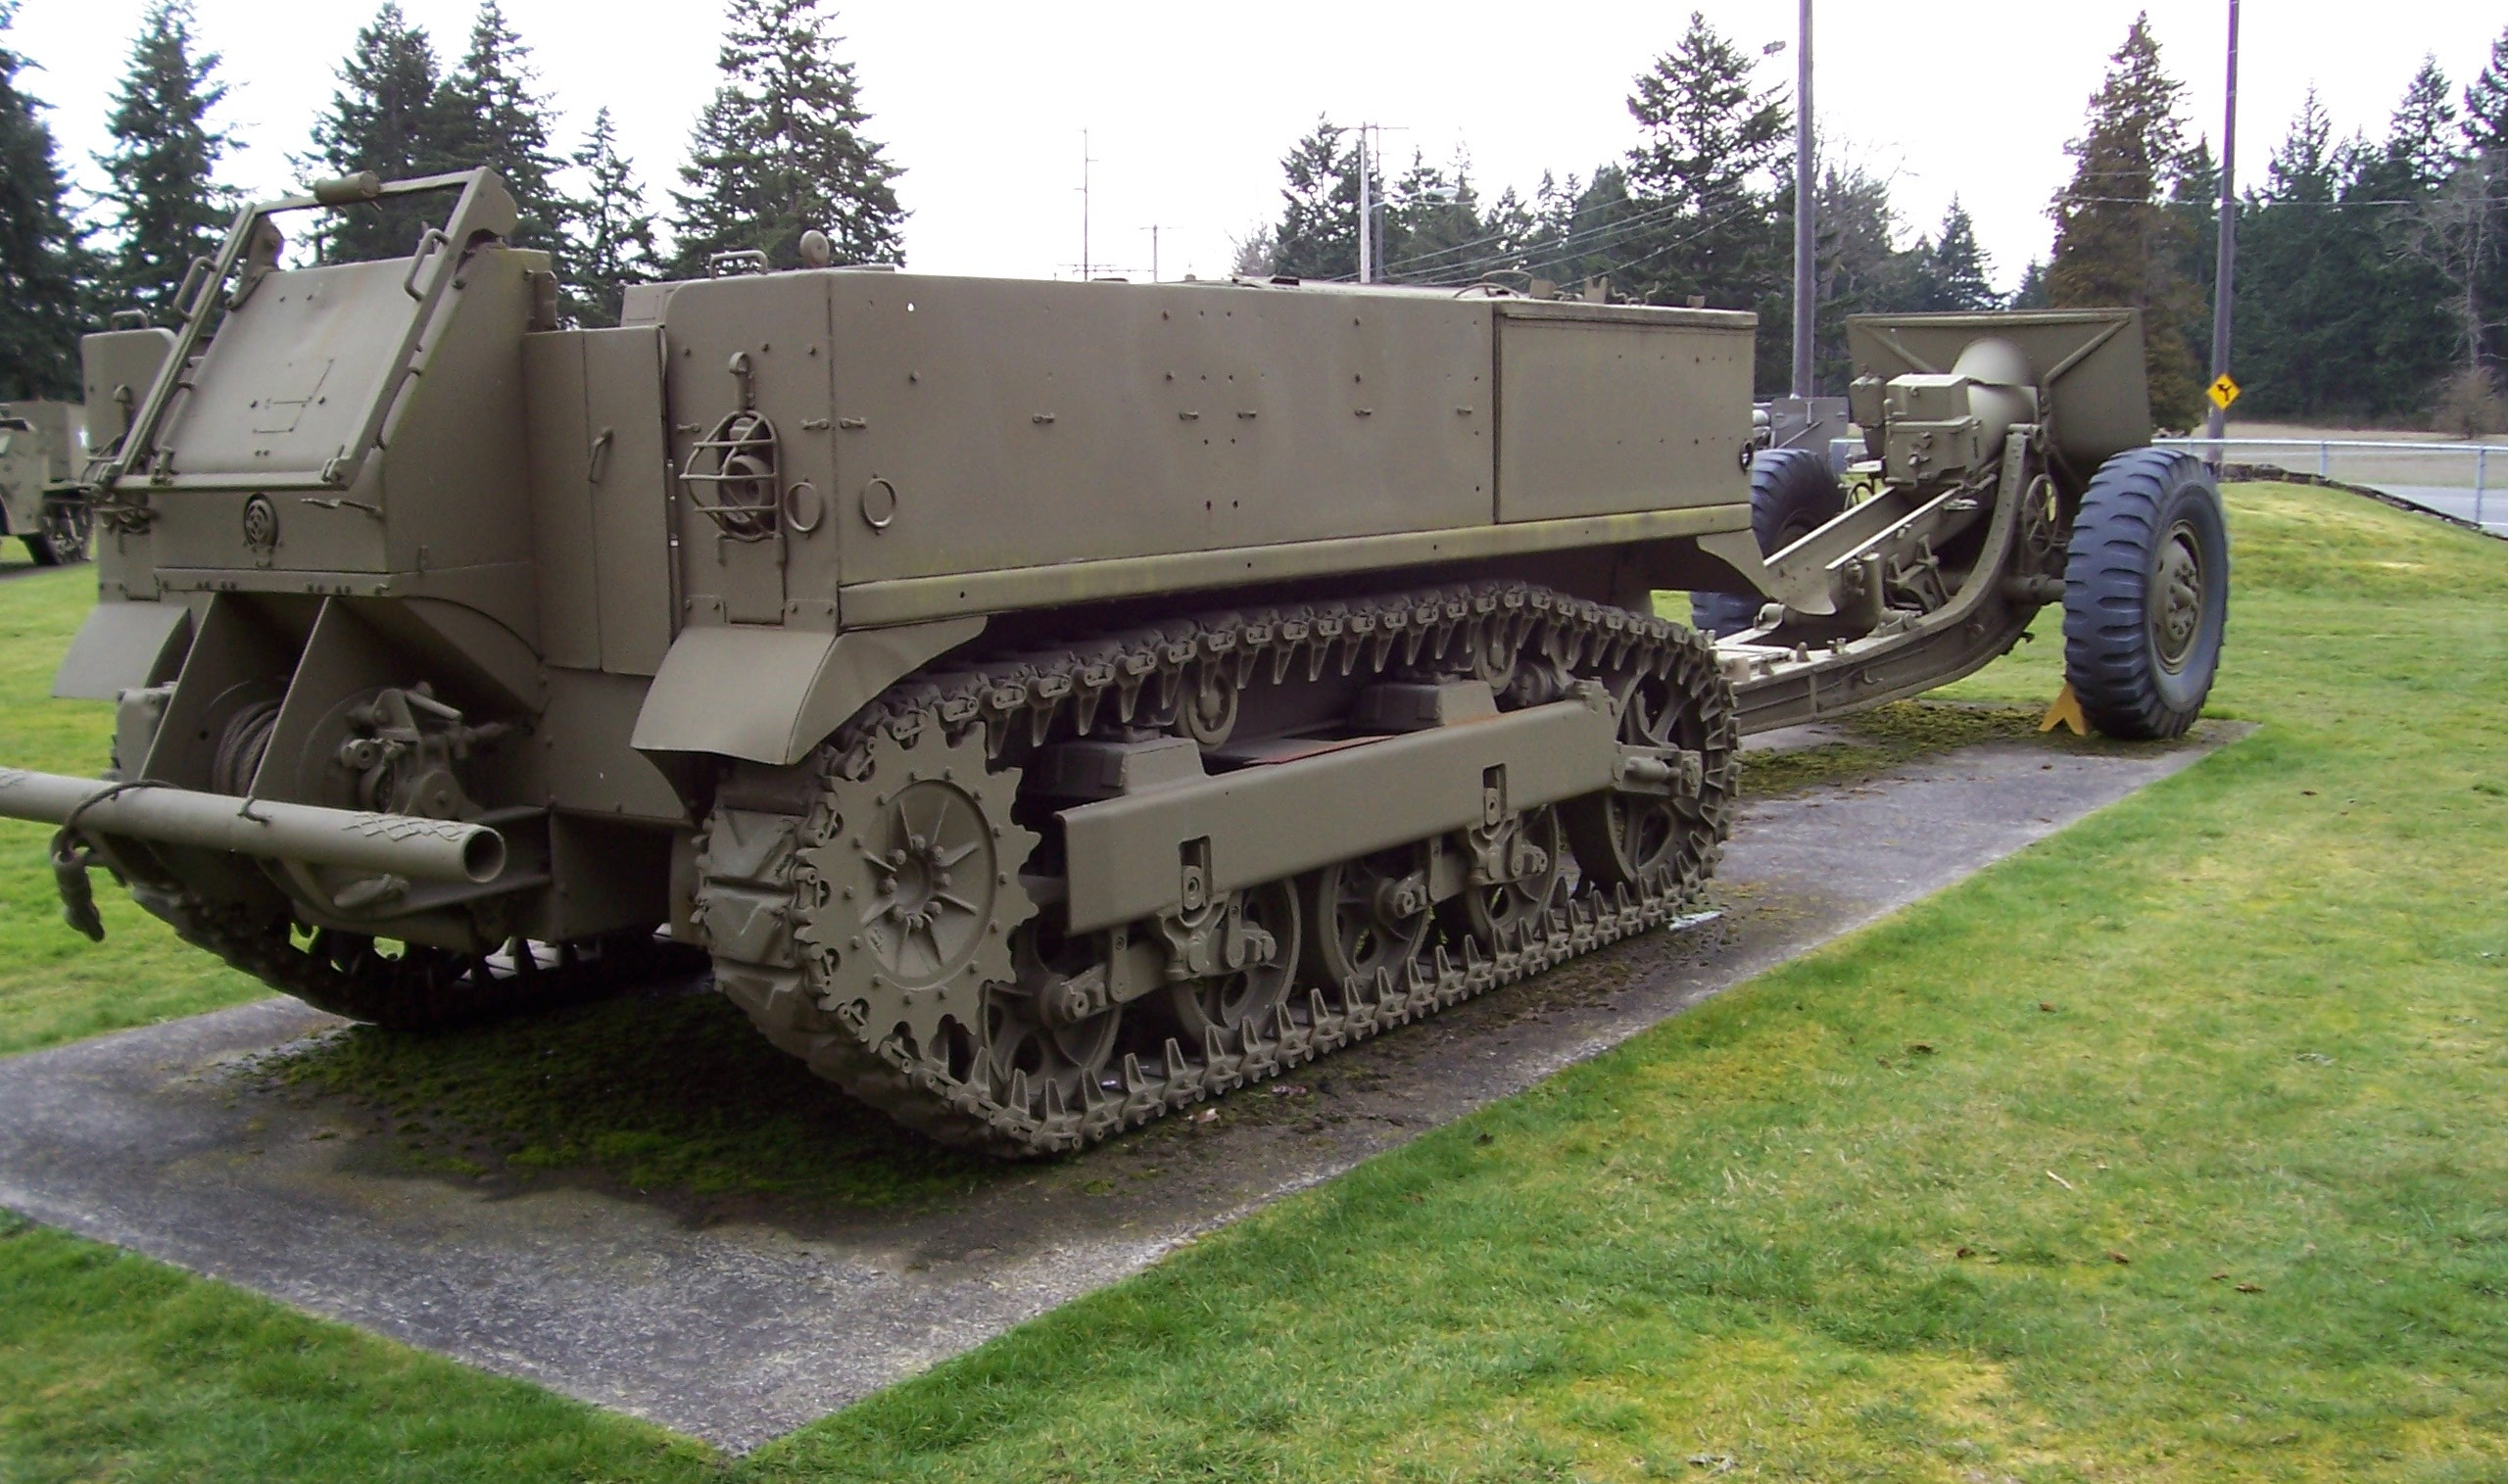 file ww2 artillery tractor fort wikimedia commons. Black Bedroom Furniture Sets. Home Design Ideas